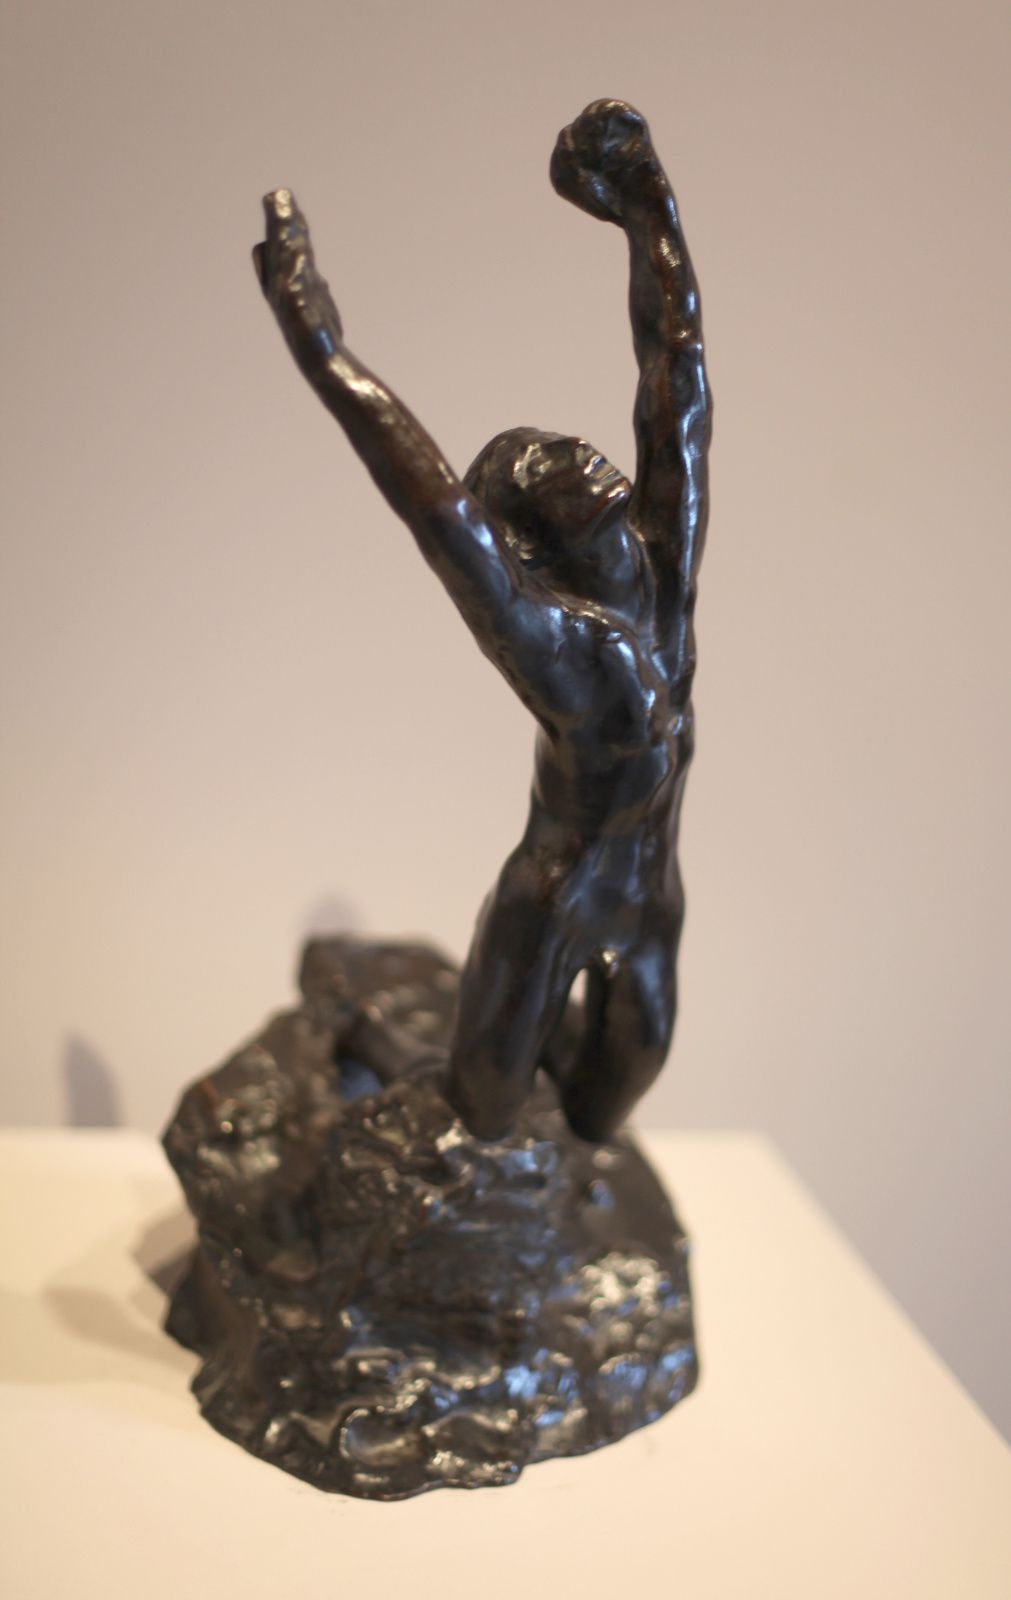 """L'Enfant prodigue"", vers 1886  de Auguste RODIN - Courtesy Musée RODIN © Photo Éric Simon"